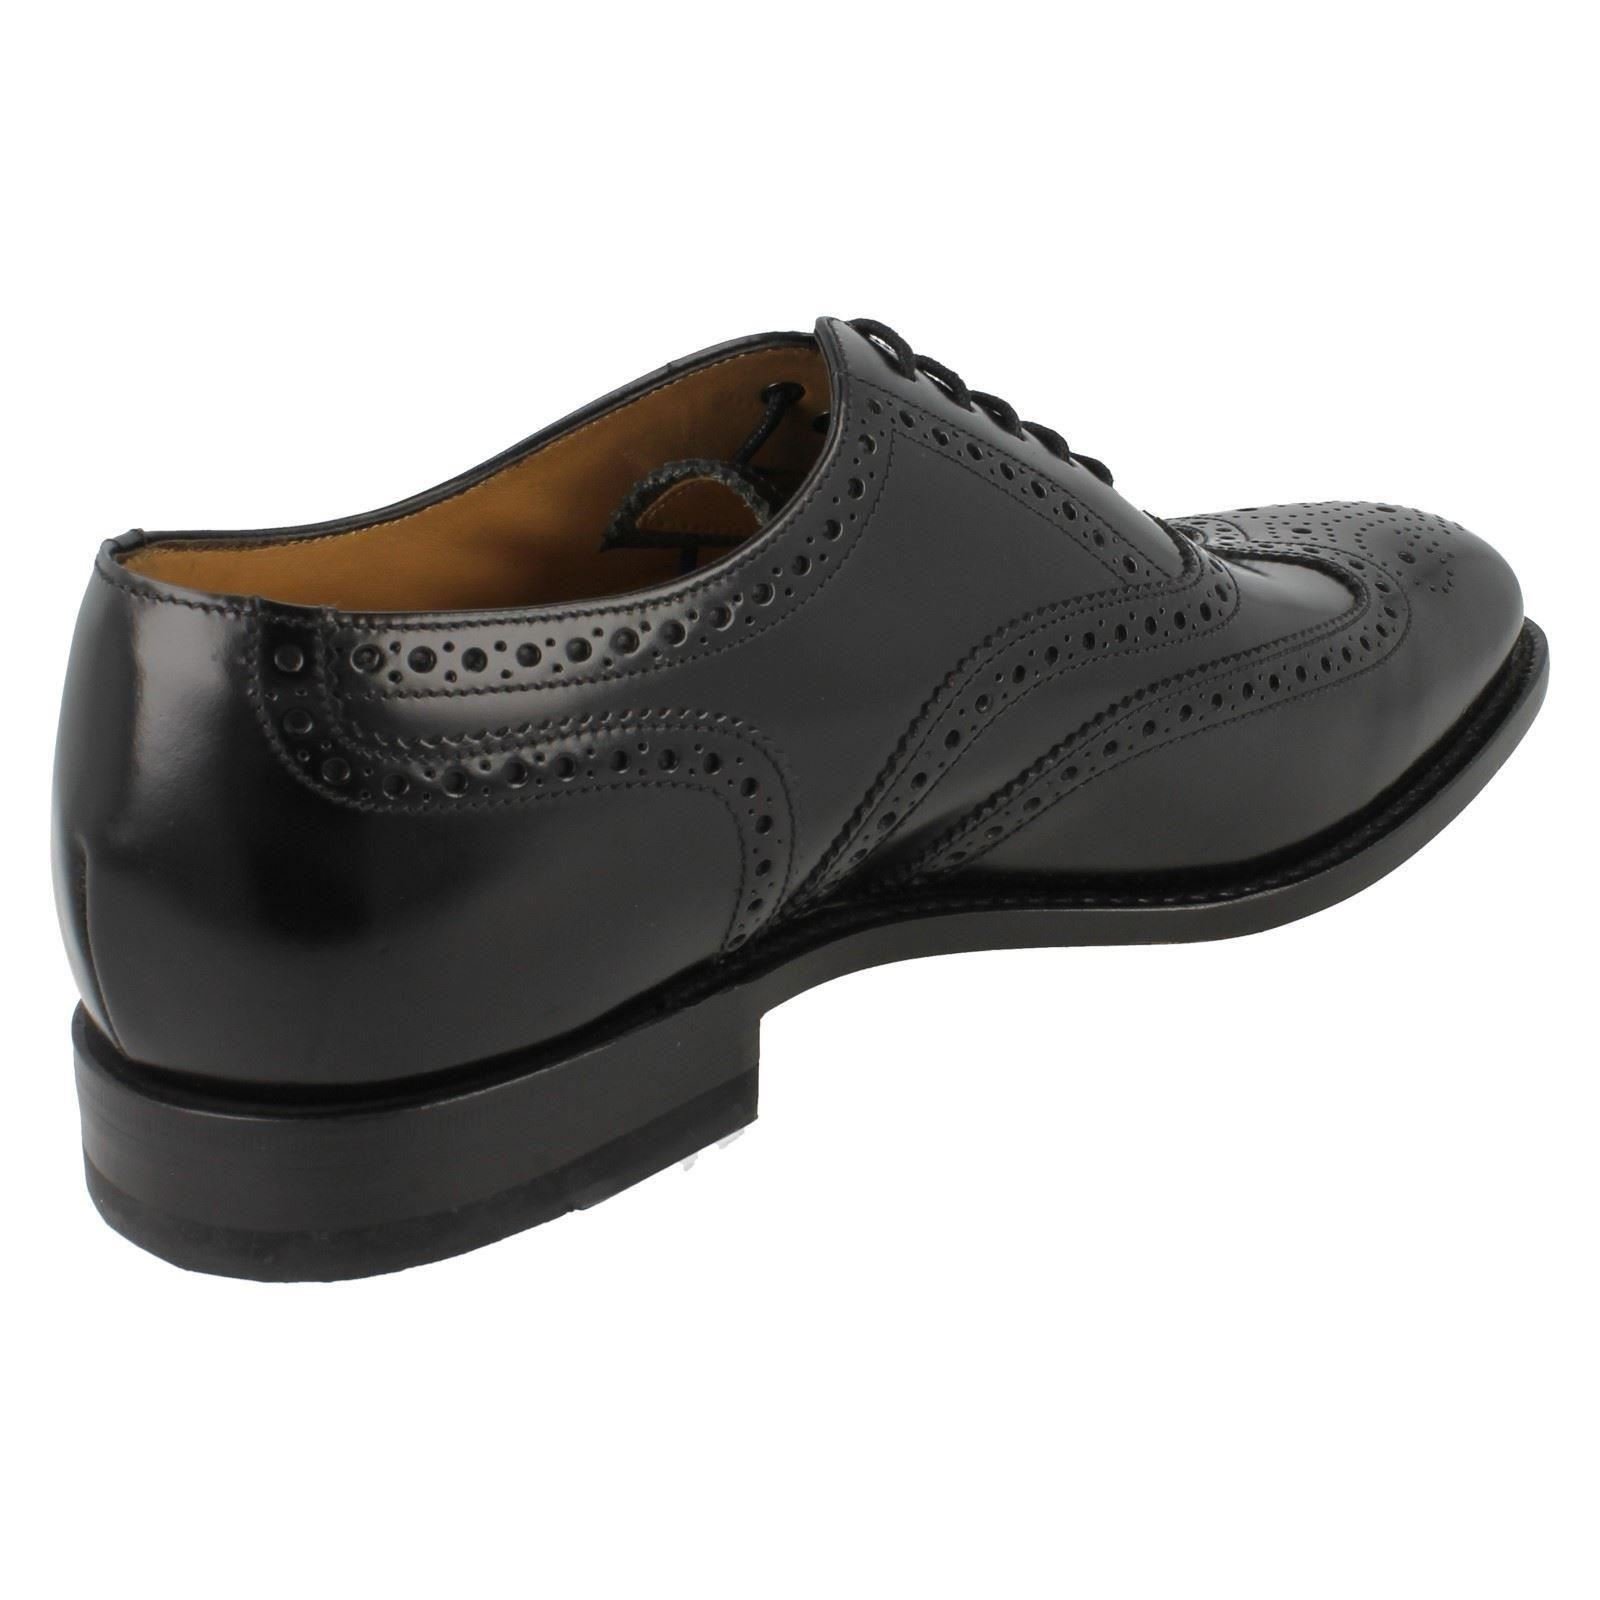 mens loake formal leather brogue shoes fitting g 202 ebay